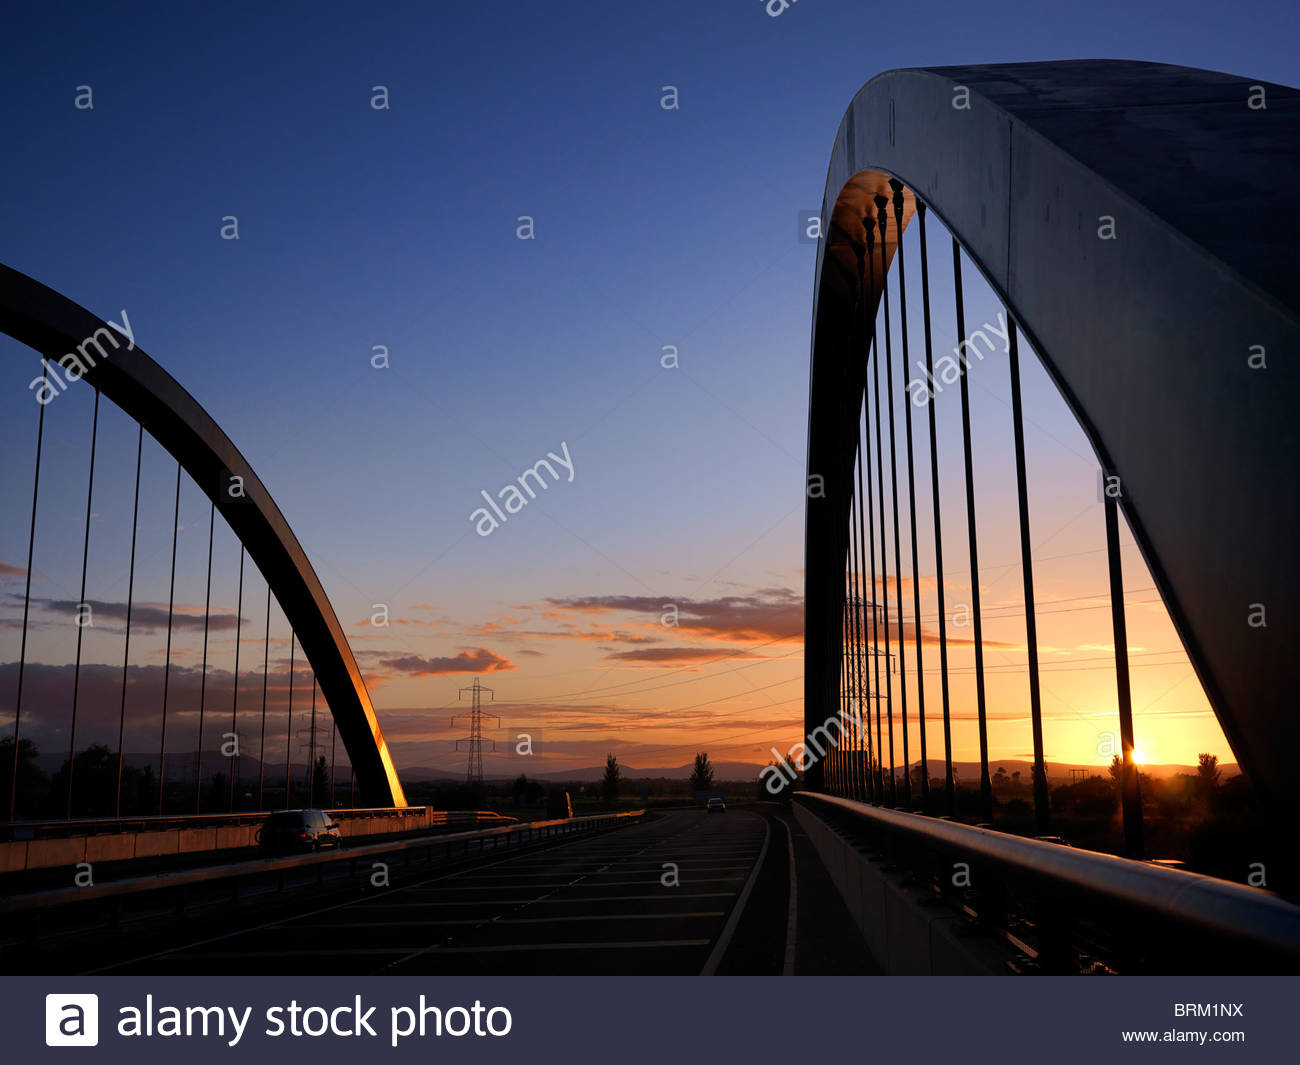 Toome Bridge at sunset. - Stock Image